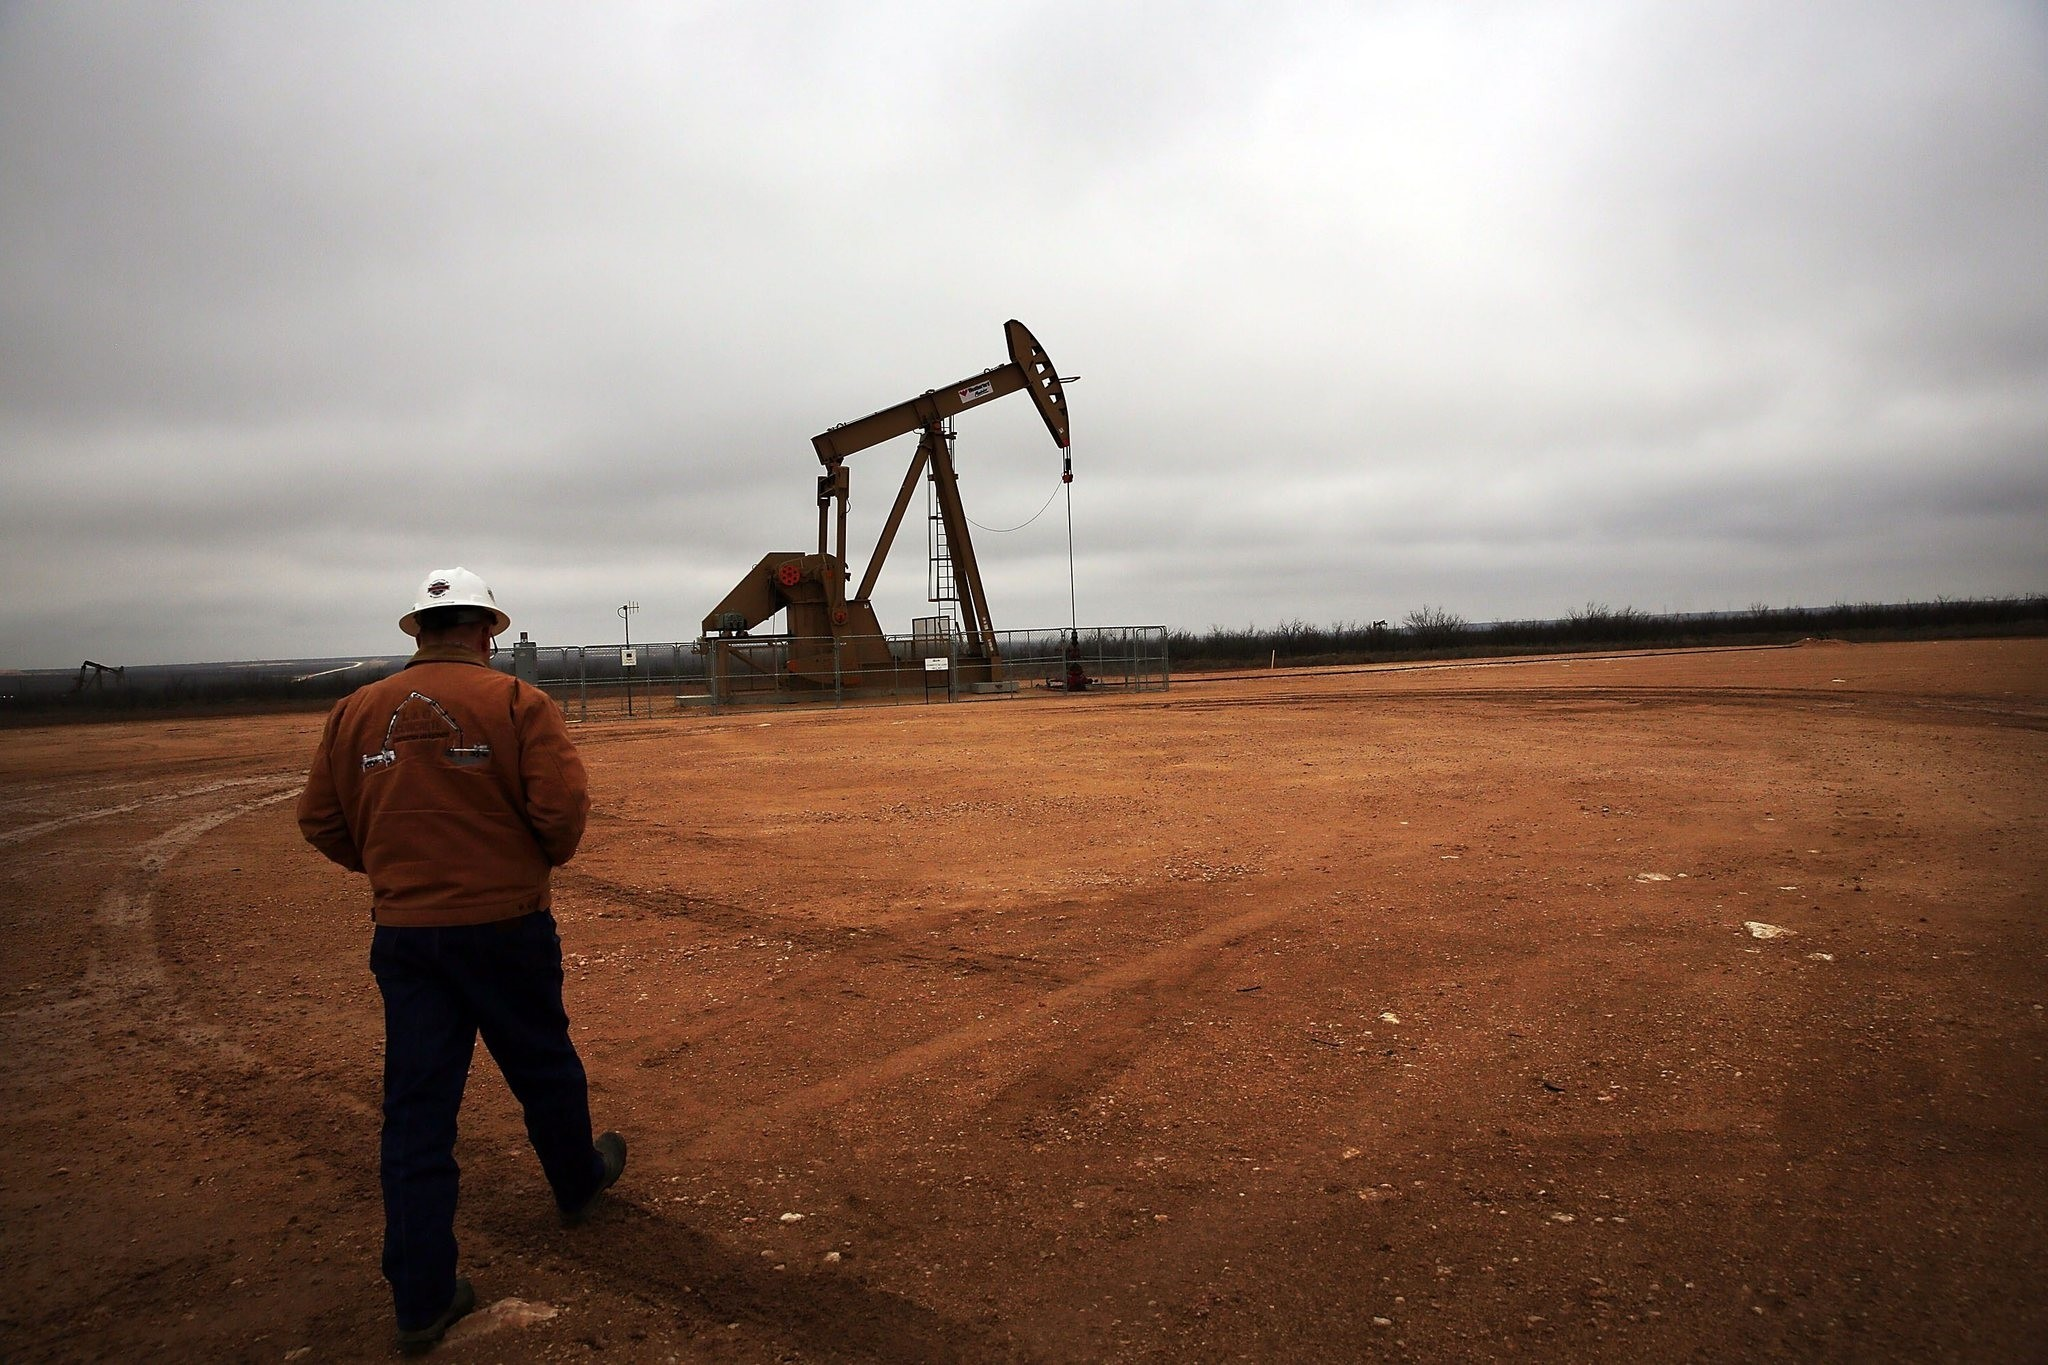 An oil well owned and operated by Apache Corporation in the Permian Basin.